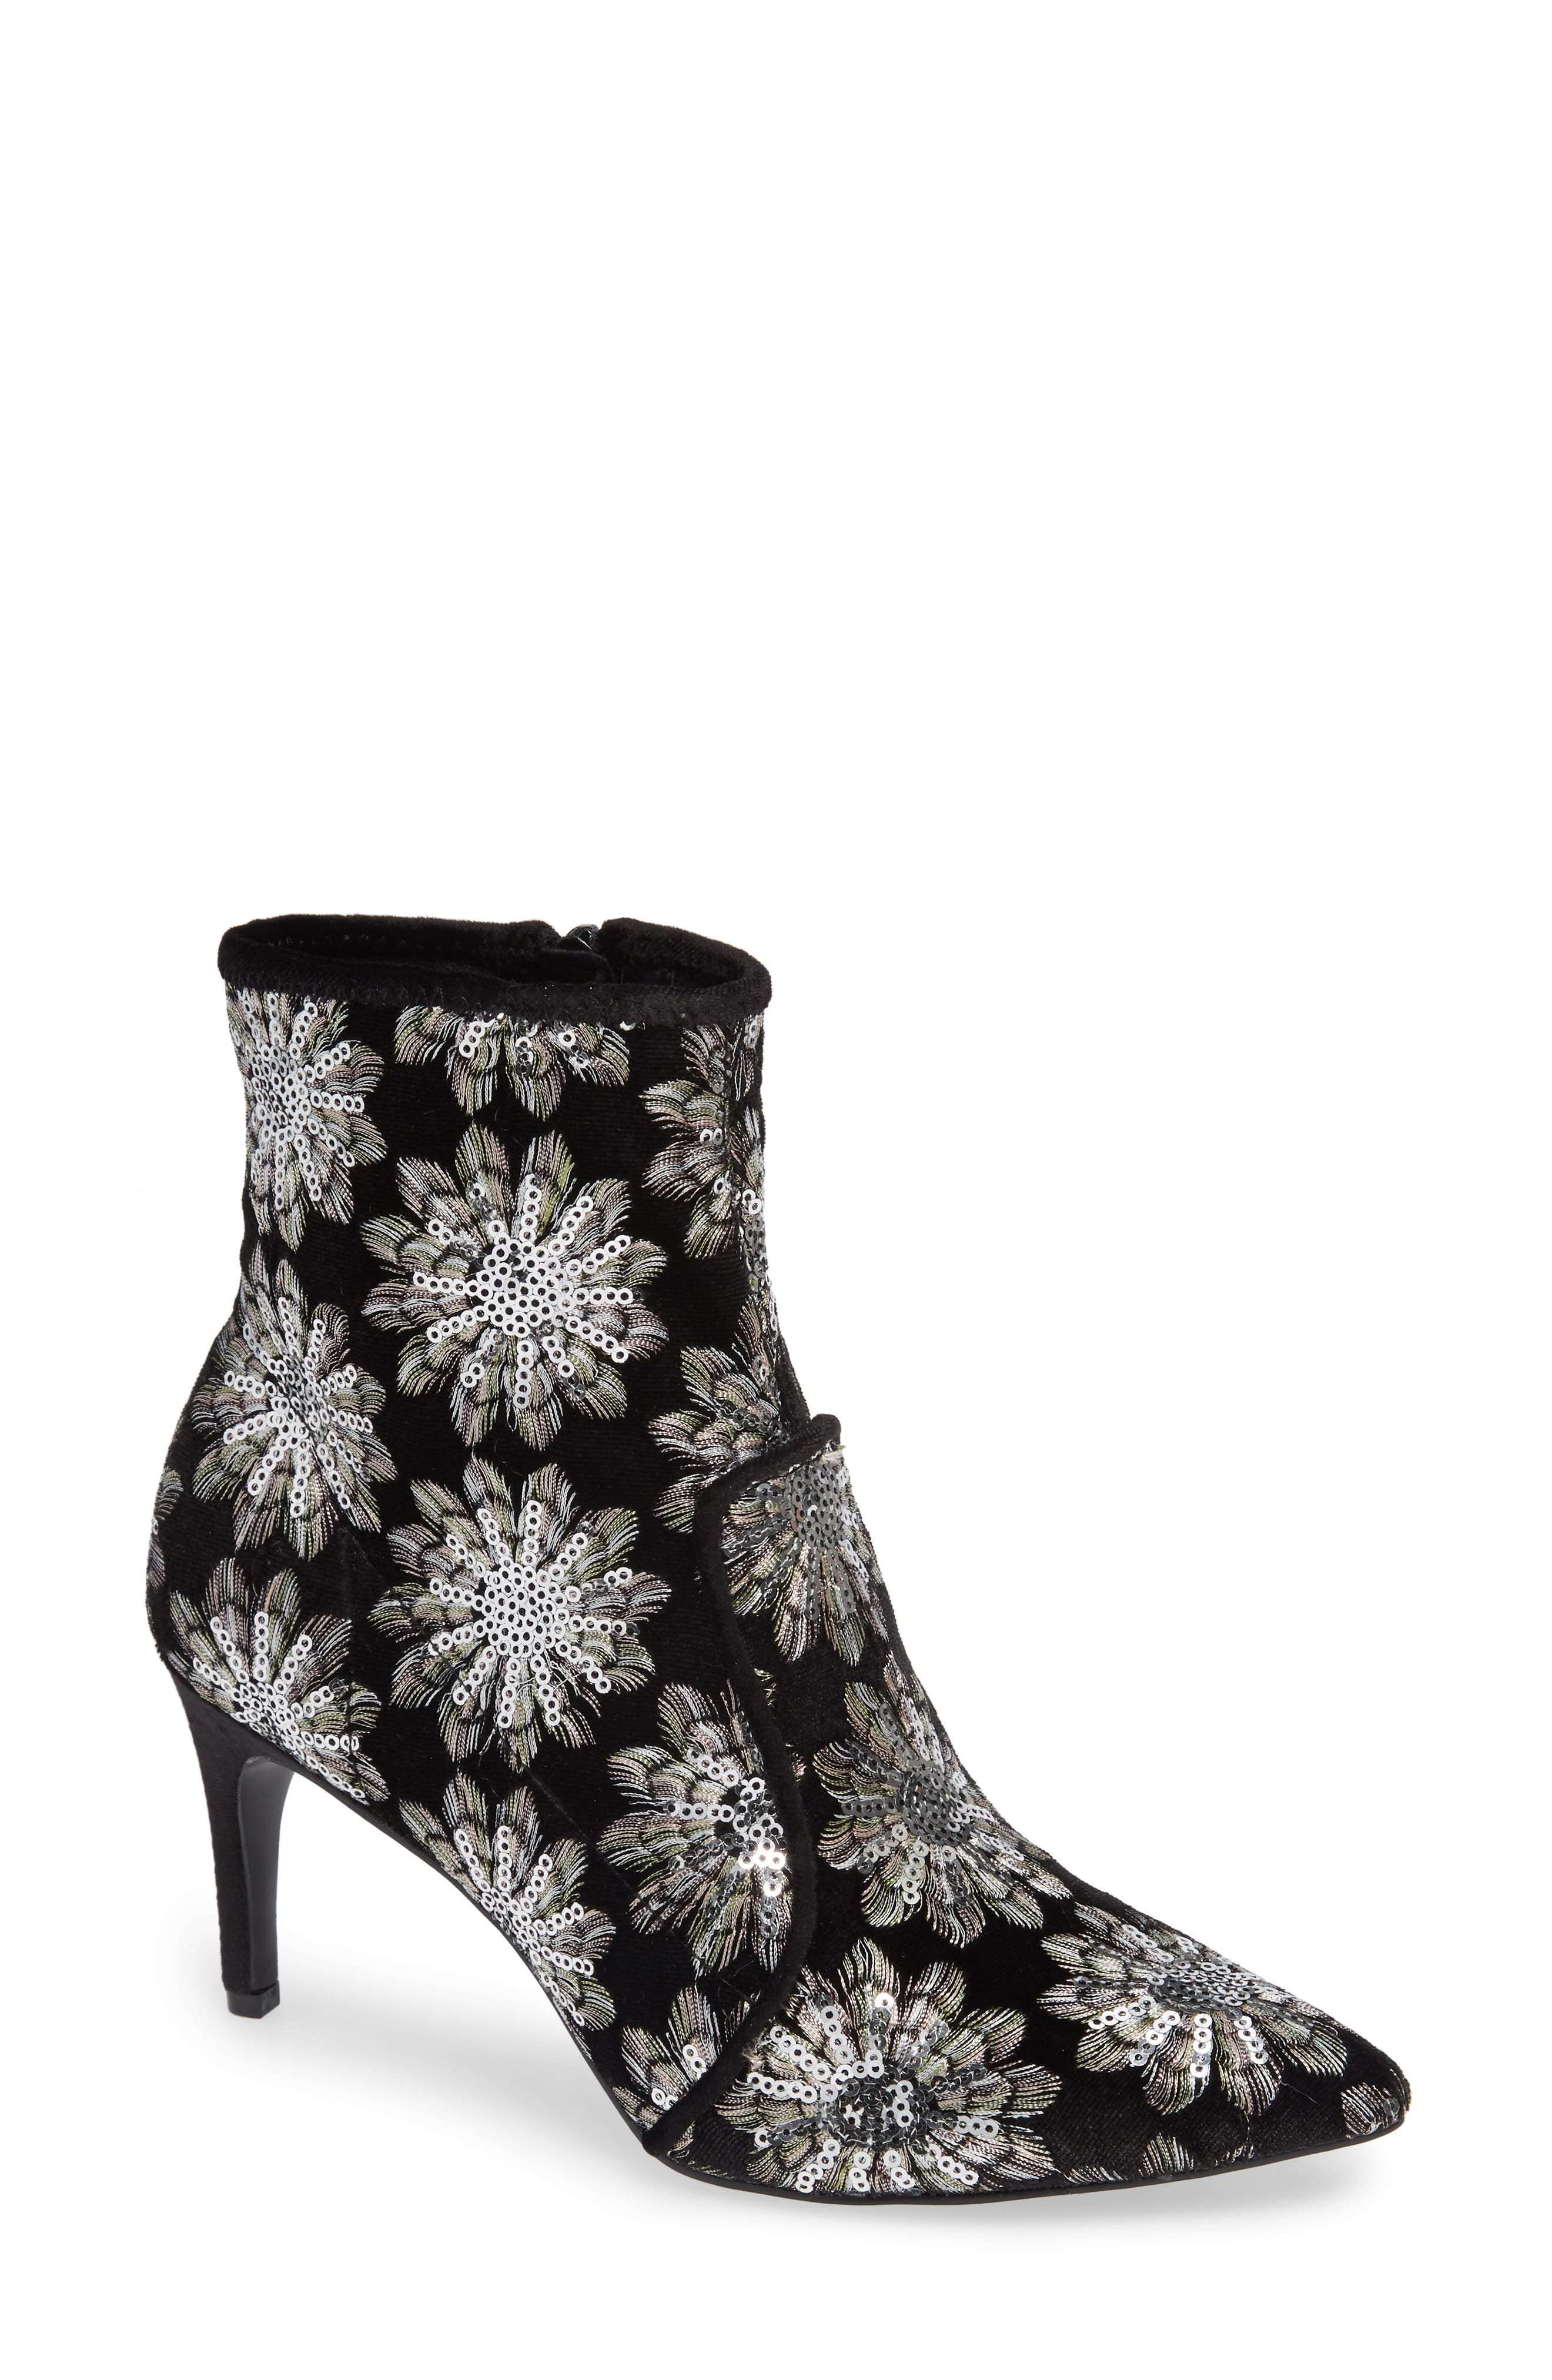 CHARLES DAVID Women'S Pointed Toe Floral Firework Embroidered Booties in Silver/ Black